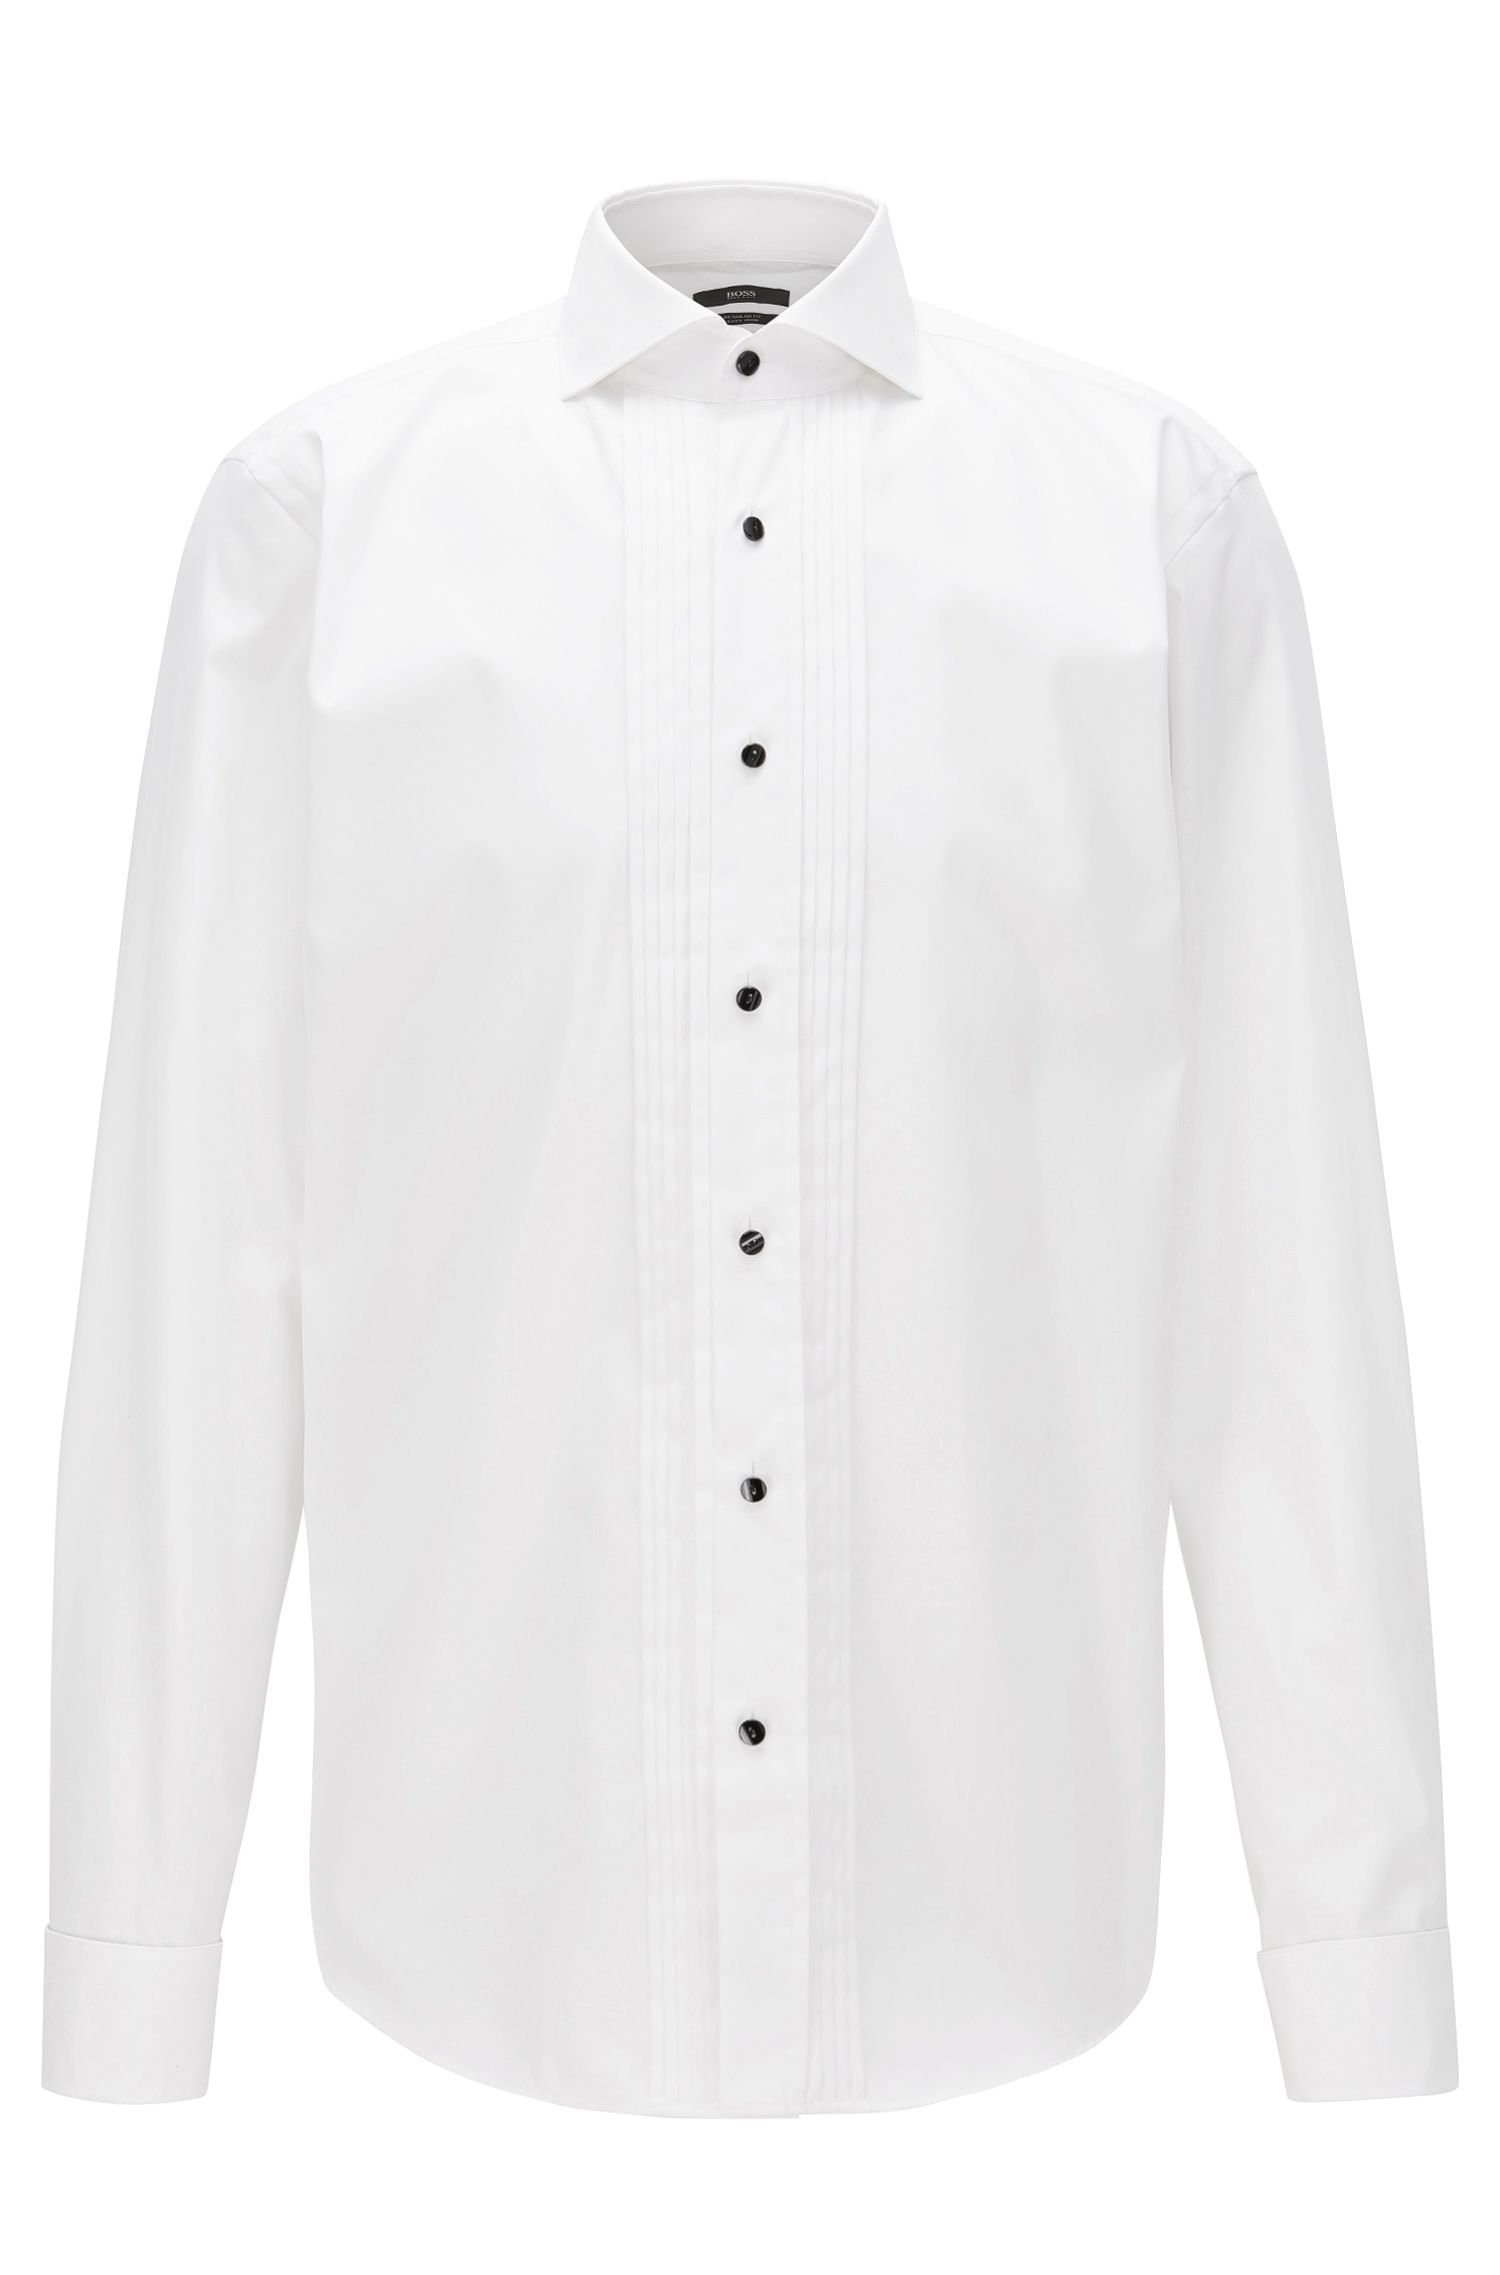 Camicia da smoking regular fit in cotone facile da stirare